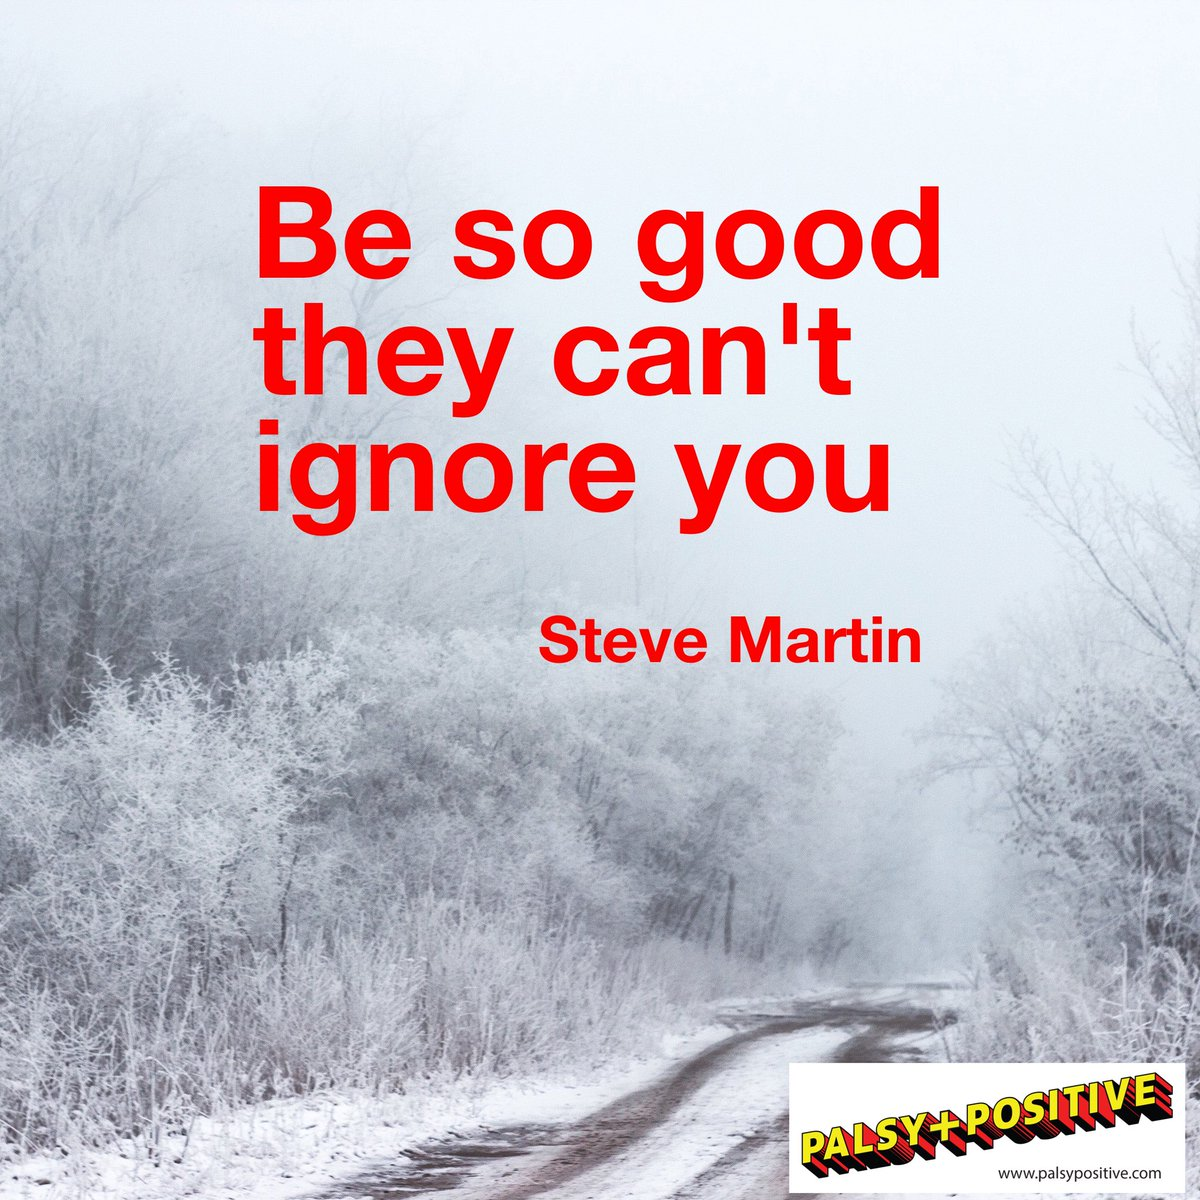 One of my favorite quotes #comedy #whatcerebralpalsy #stevemartin #besogood<br>http://pic.twitter.com/DdugNDzfGQ